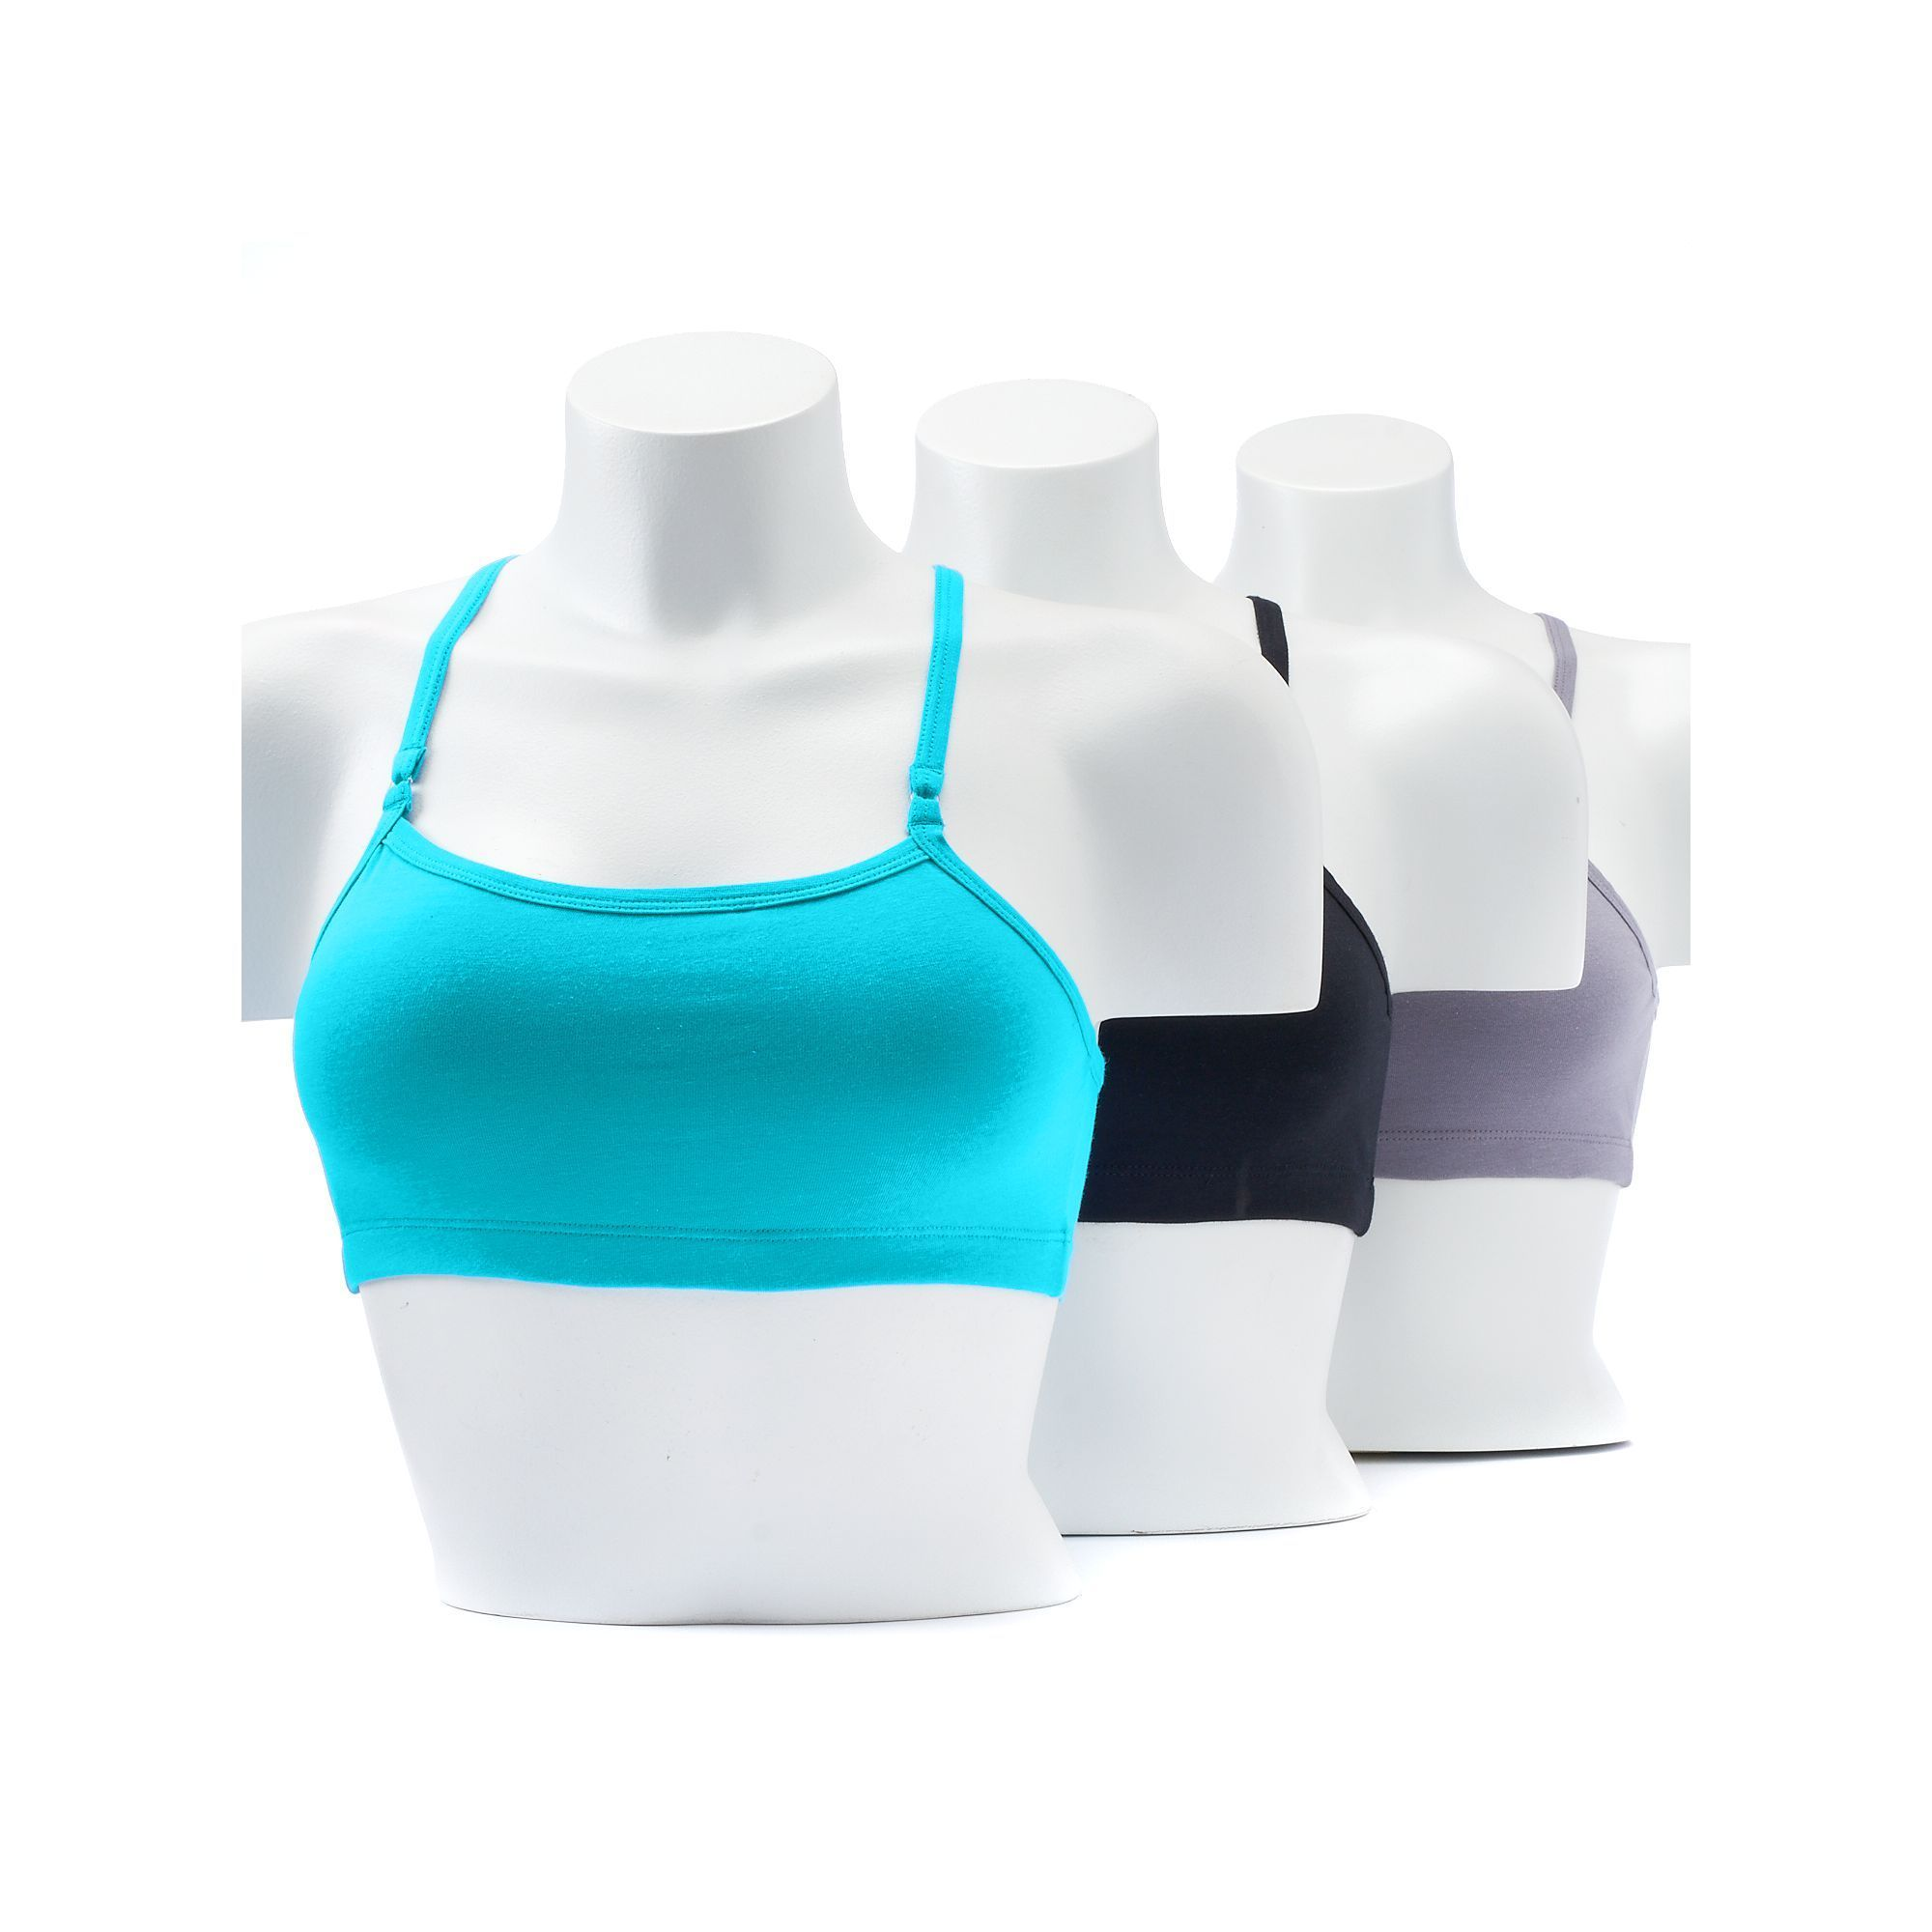 c583175a7aa92 Fruit of the Loom 3-pack Strappy Racerback Sports Bras 3DSCSCT ...